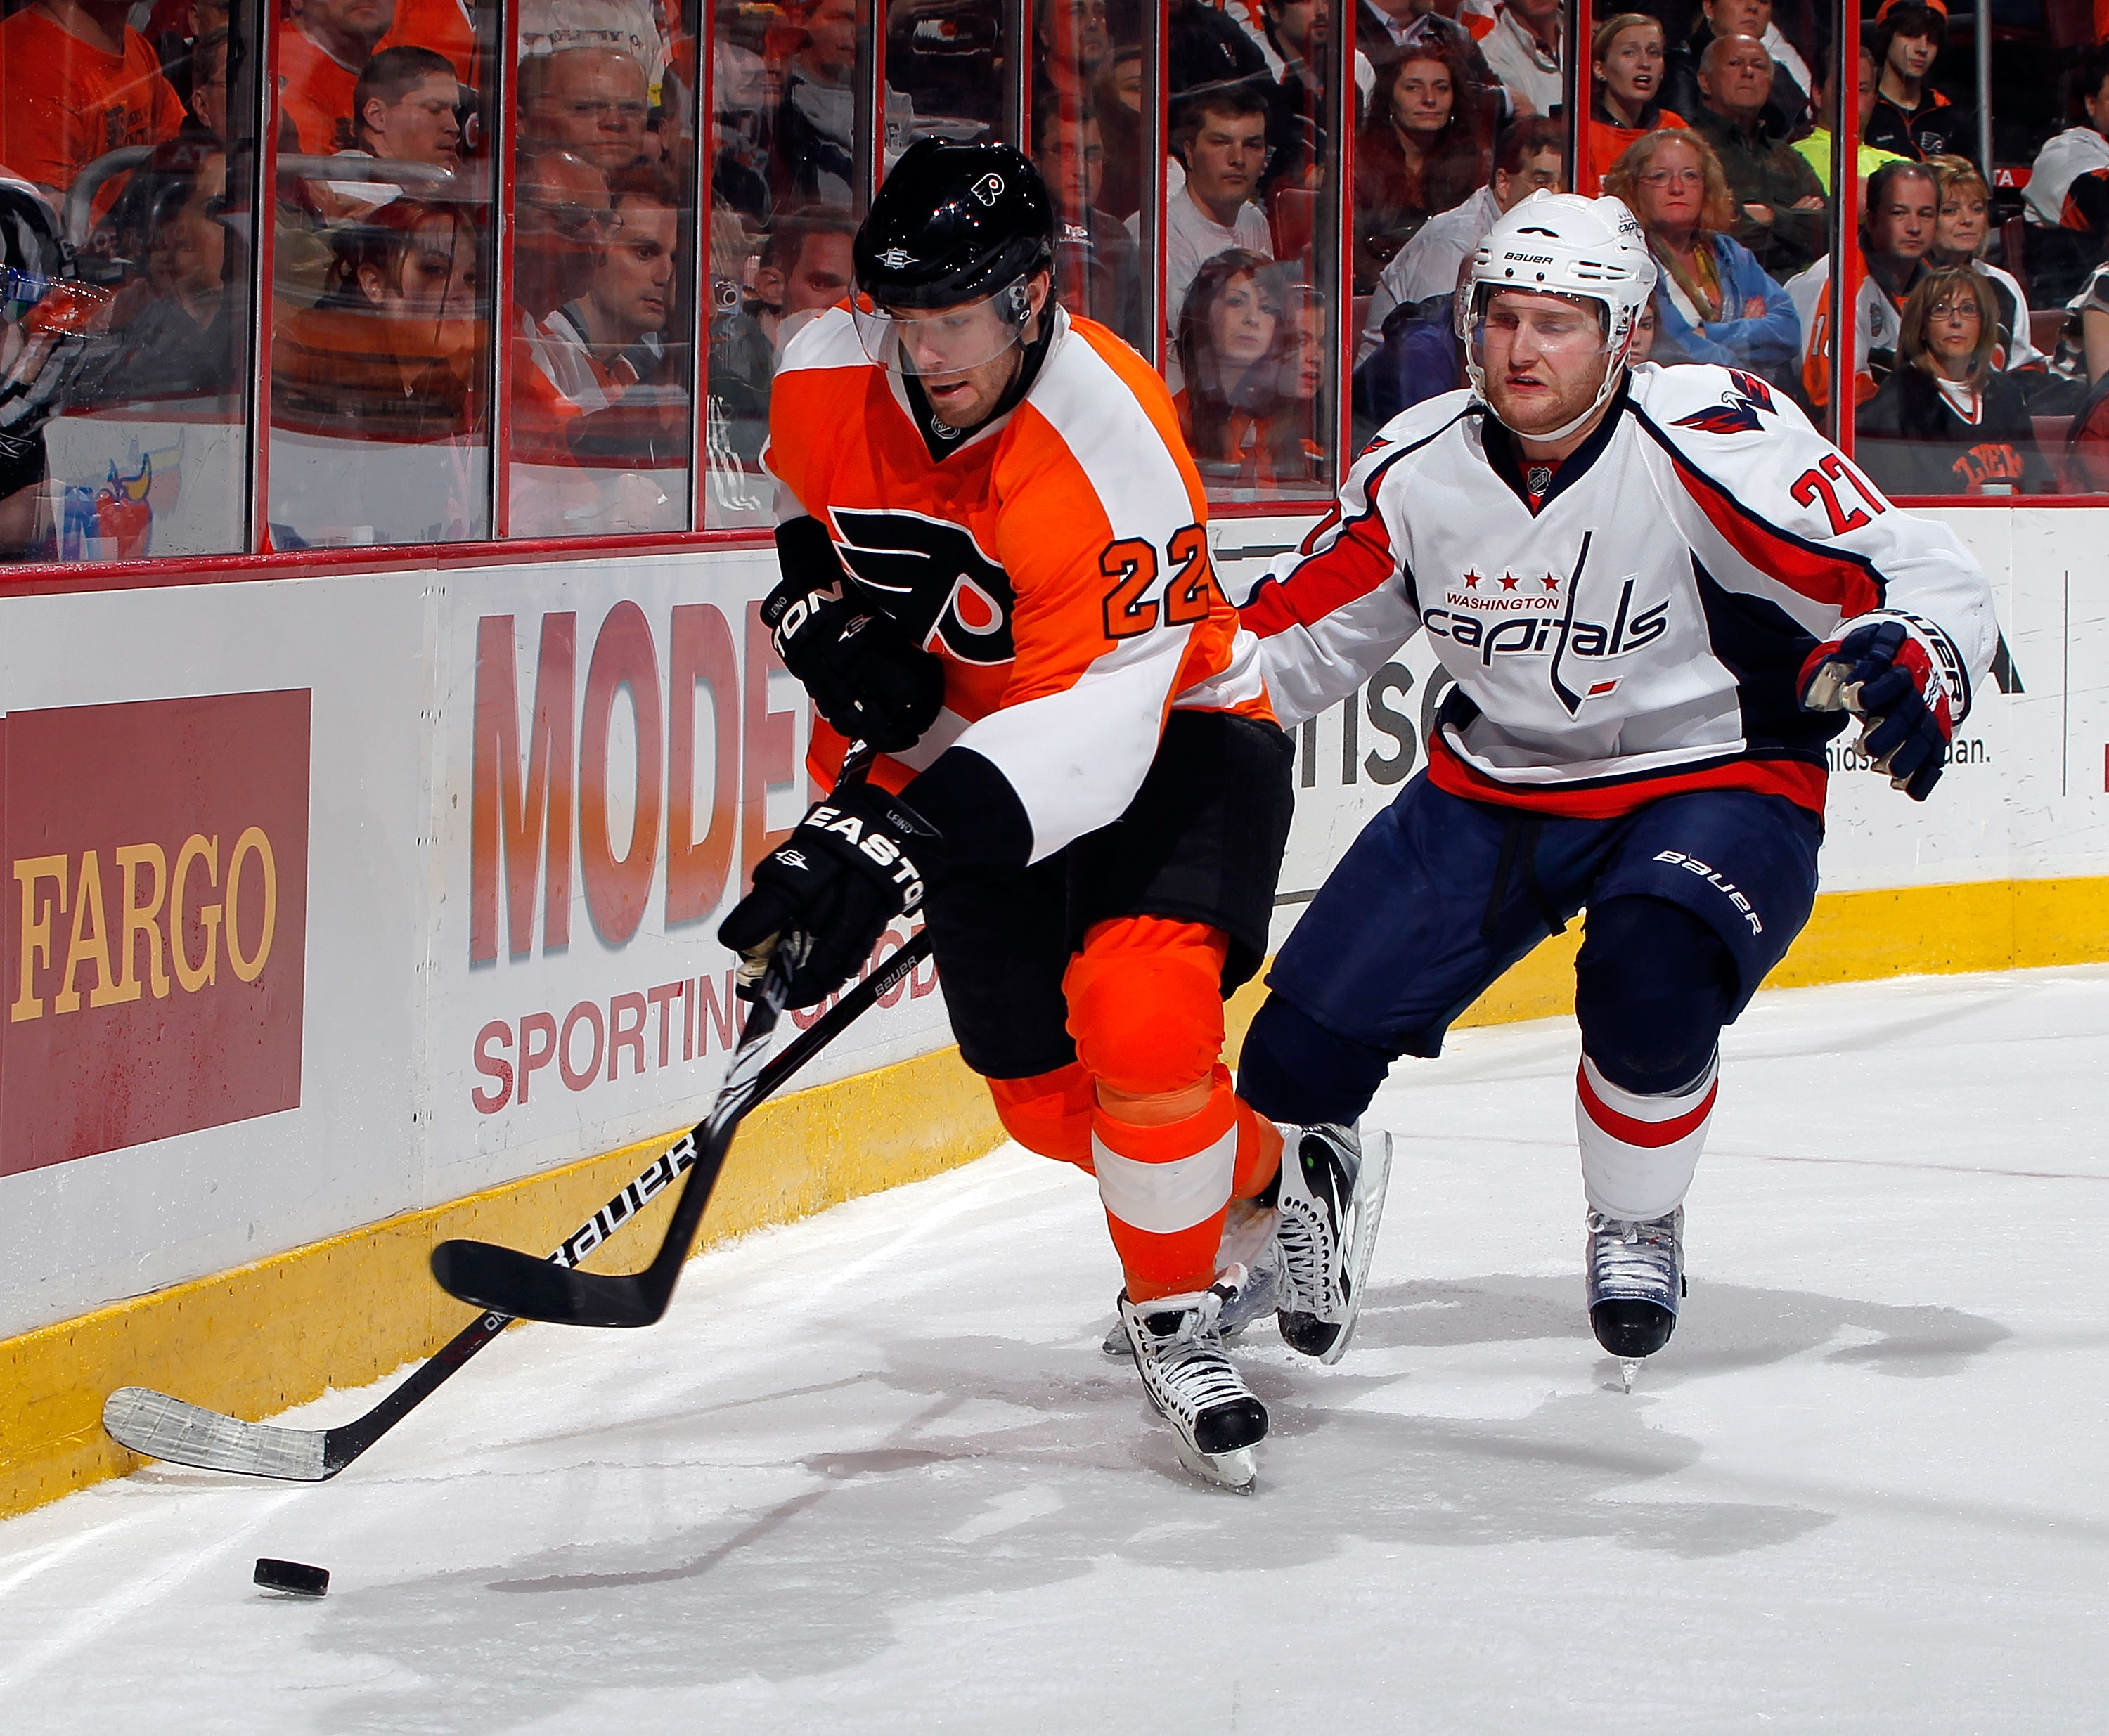 PHILADELPHIA, PA - MARCH 22:  Karl Azner #27 of the Washington Capitals skates after Ville Leino #22 of the Philadelphia Flyers during an NHL hockey game at the Wells Fargo Center on March 22, 2011 in Philadelphia, Pennsylvania.  (Photo by Paul Bereswill/